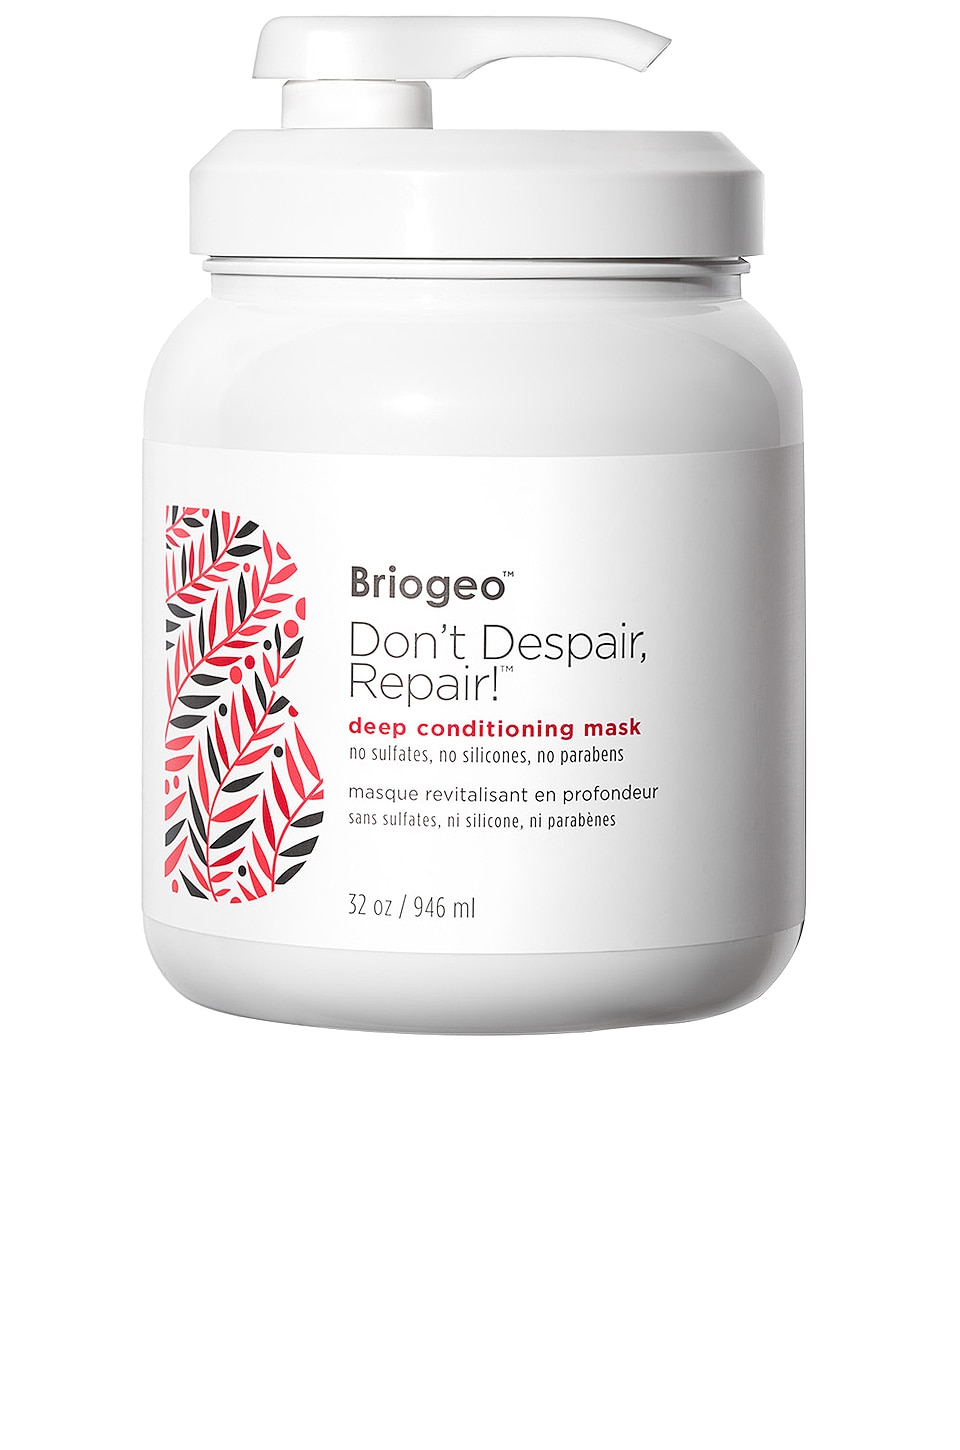 Briogeo Don't Despair, Repair! Deep Conditioning Mask Liter